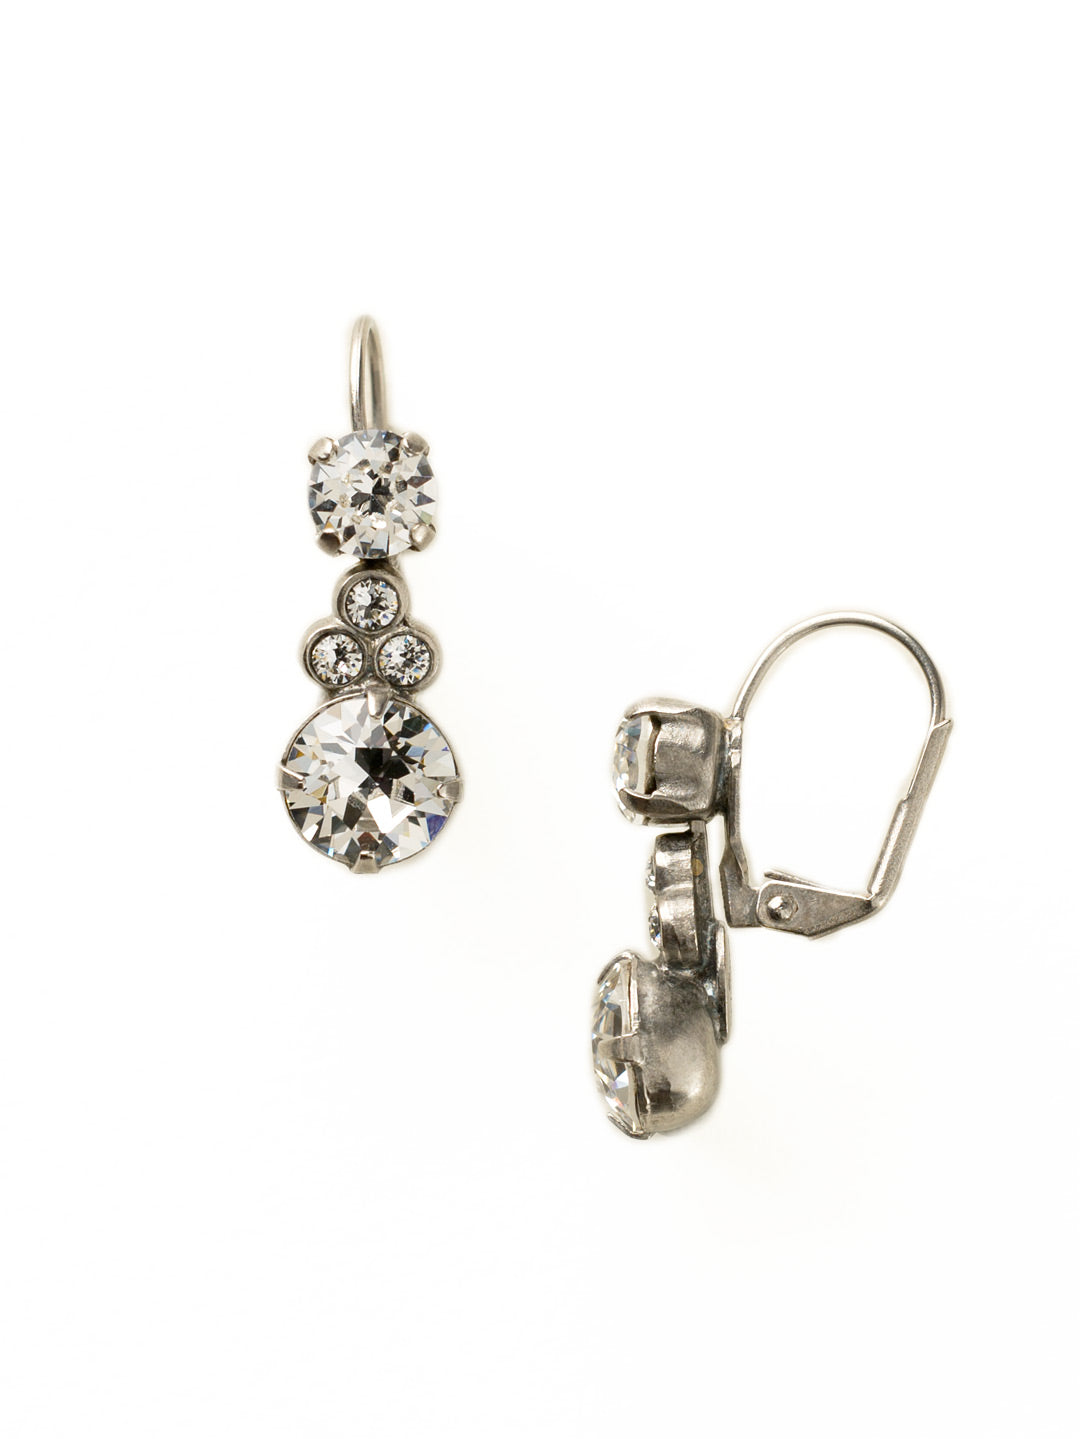 Clustered Circular Crystal Drop Earring - ECJ14ASCRY